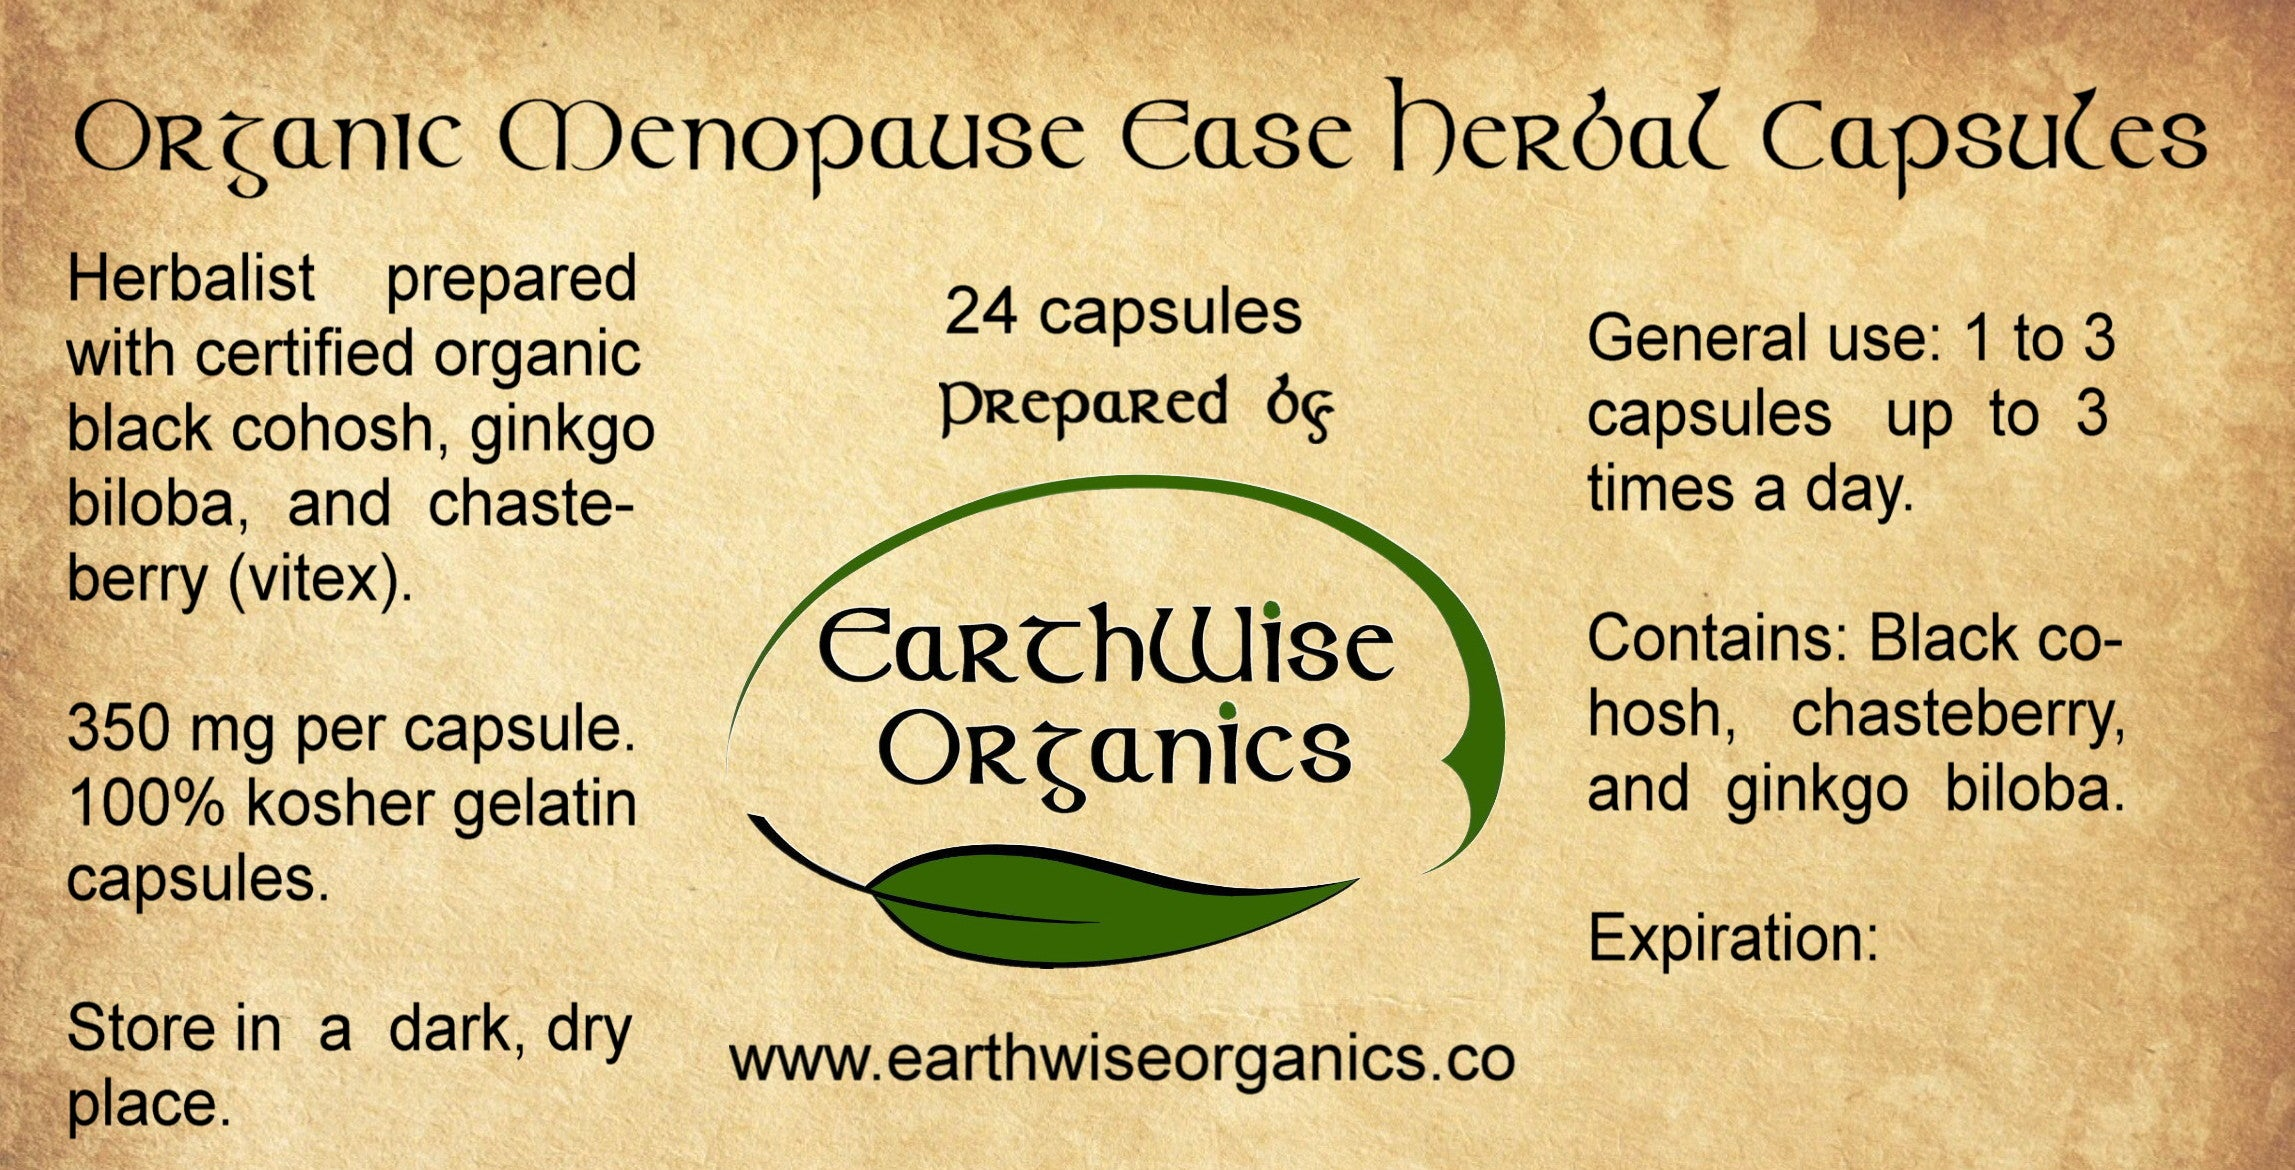 menopause ease organic herbal capsules label